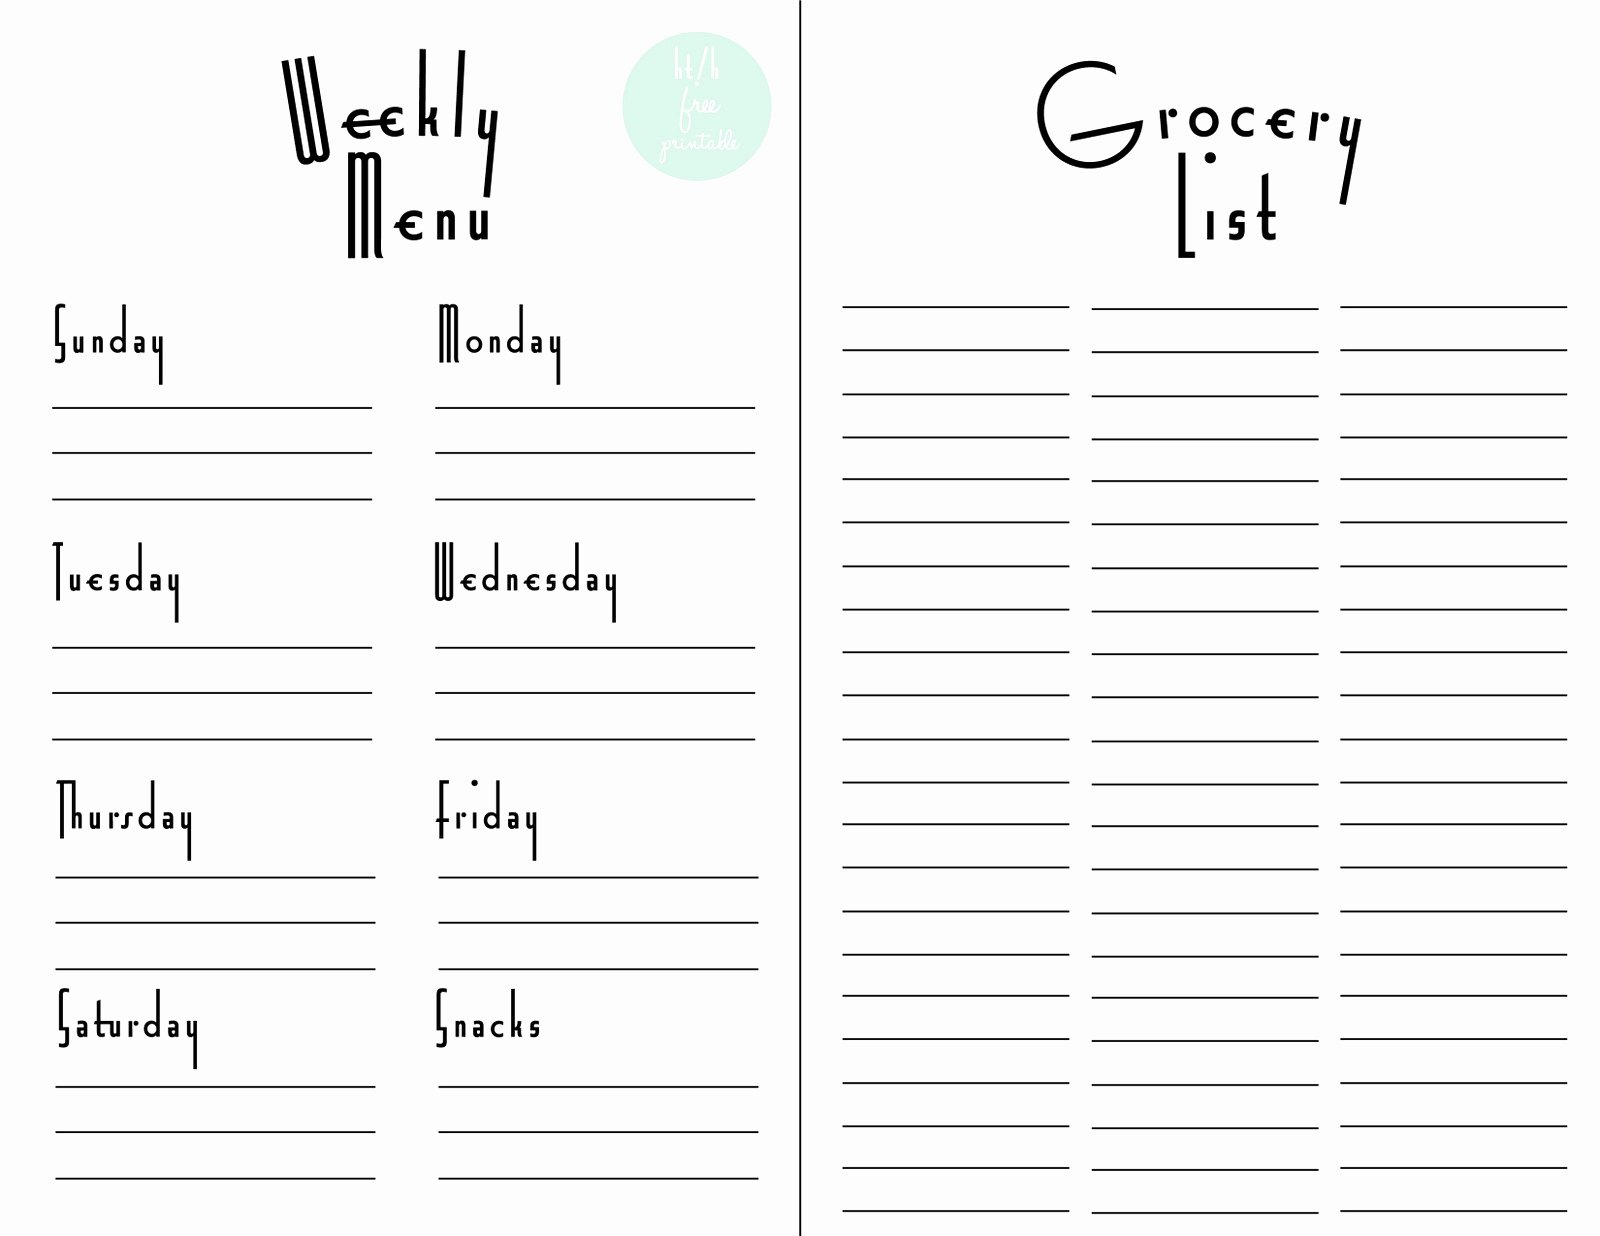 Grocery List Template Excel Elegant Shopping List Template